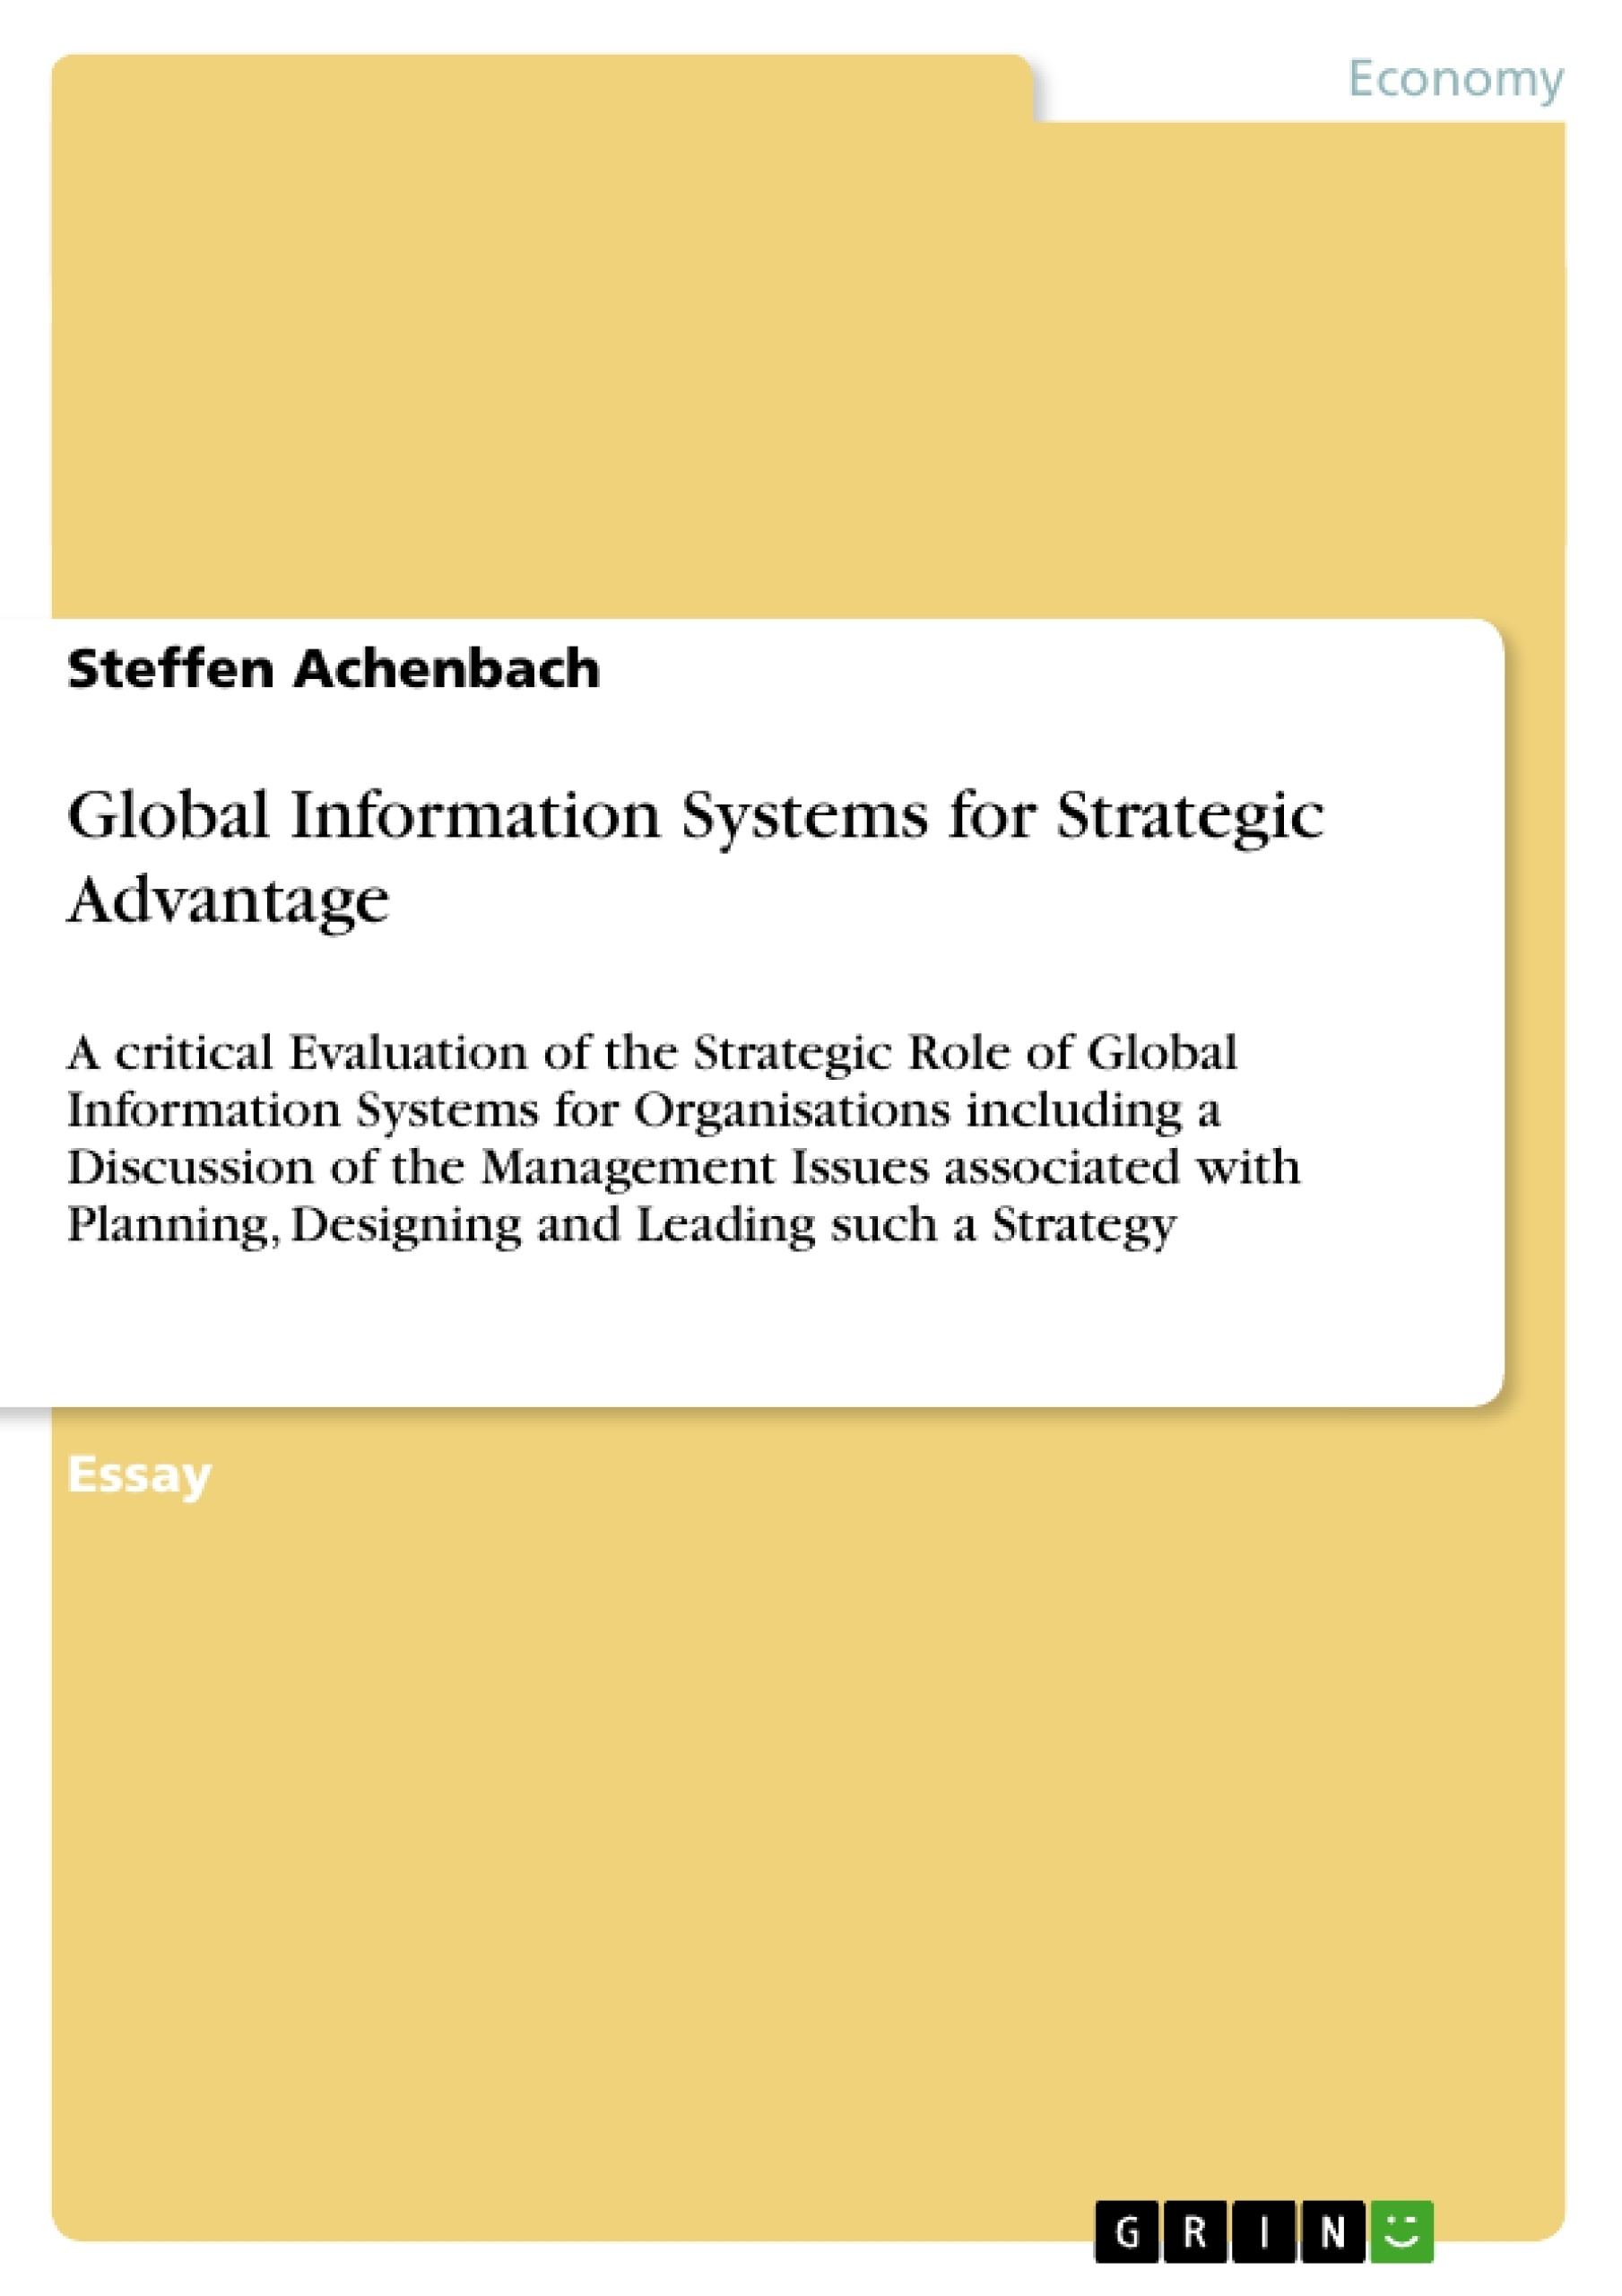 Title: Global Information Systems for Strategic Advantage